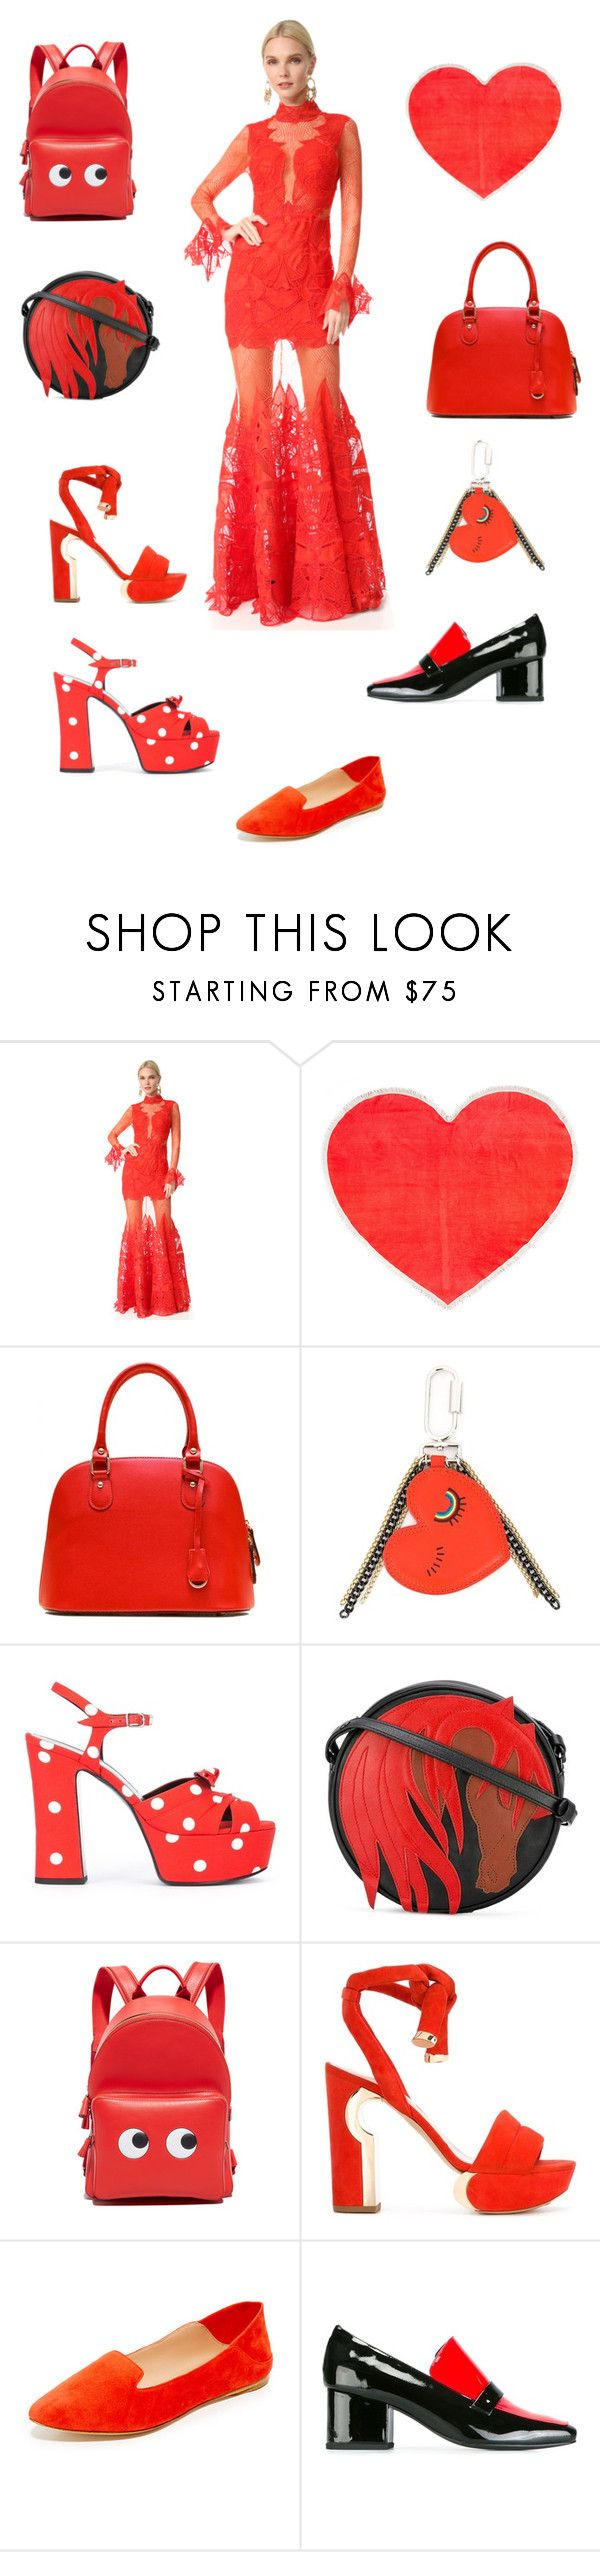 """looking garjious"" by emmamegan-5678 ❤ liked on Polyvore featuring Jonathan Simkhai, ban.do, Sonia by Sonia Rykiel, Yves Saint Laurent, Just Cavalli, Anya Hindmarch, Nicholas Kirkwood, Sigerson Morrison, Dorateymur and vintage"